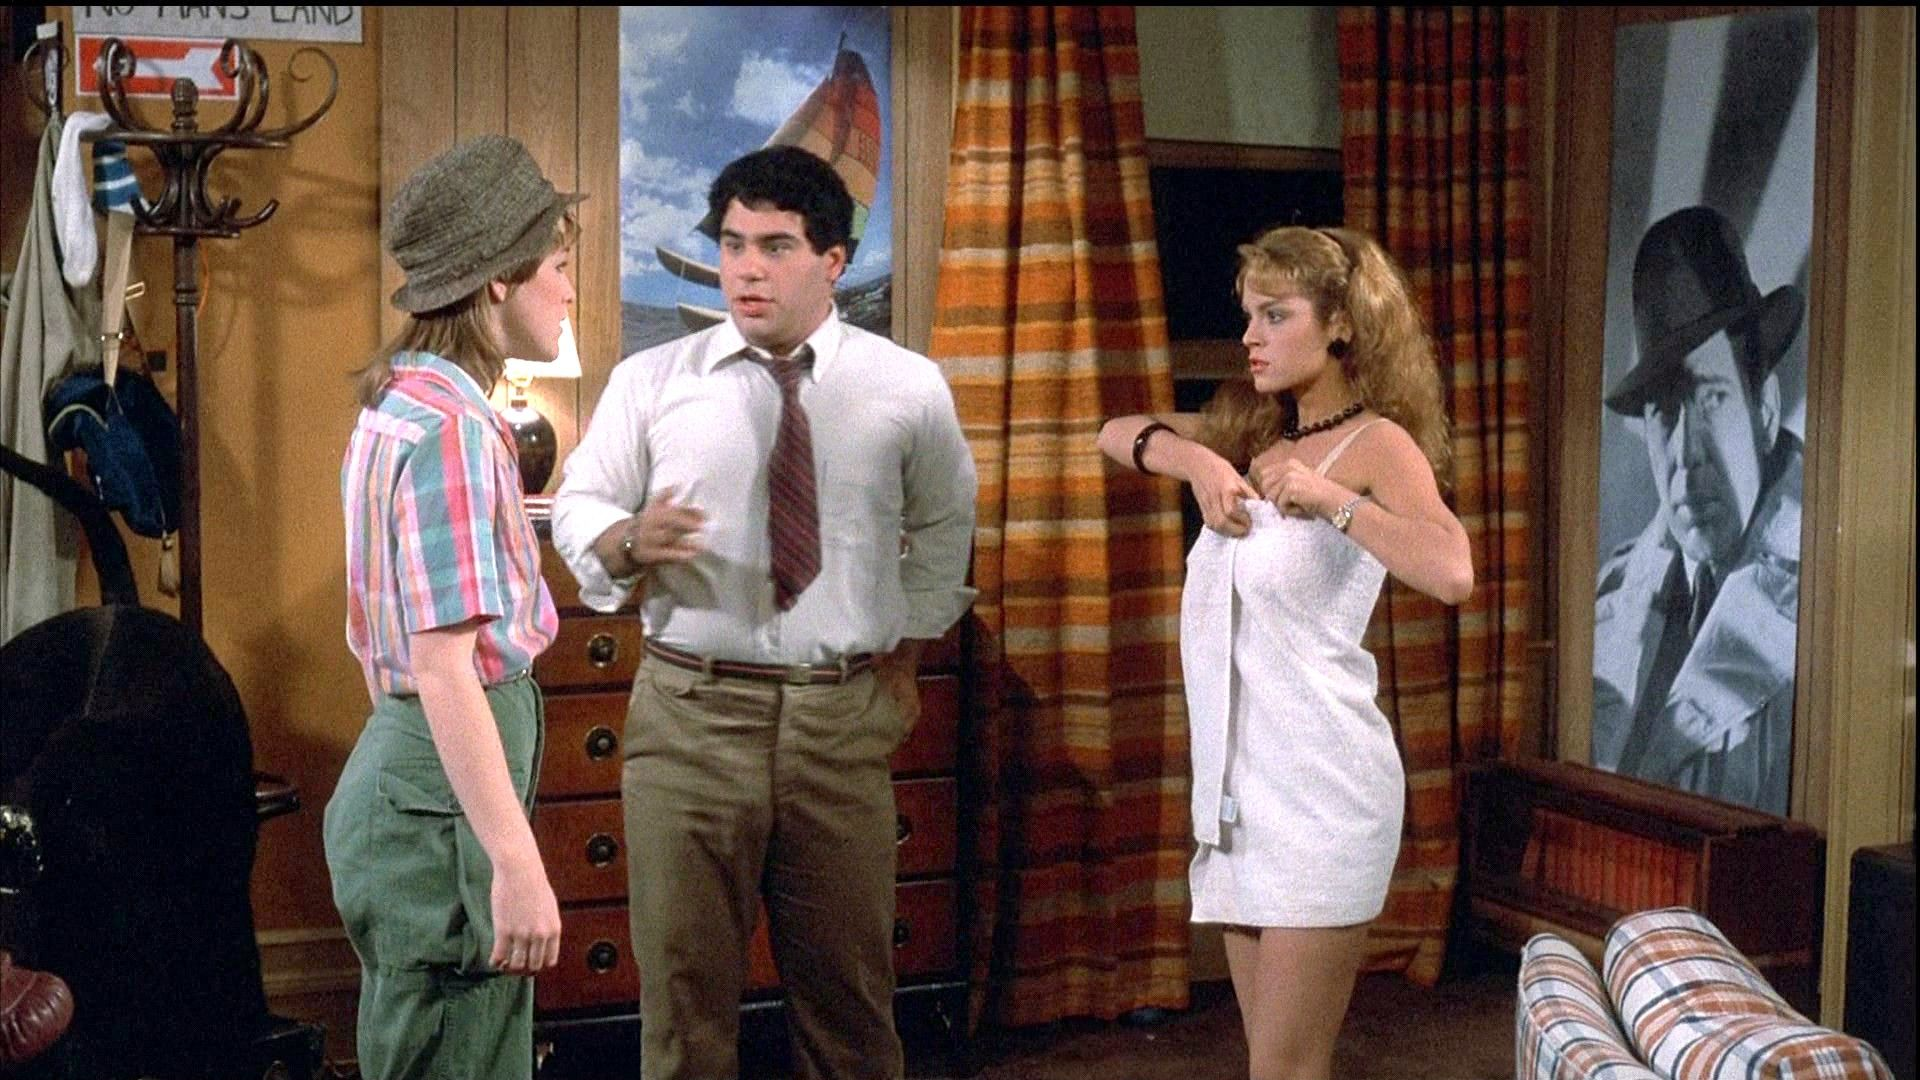 Betsy Russell Private School Jordan Pics Betsy Russell Matthew Modine Phoebe Cates